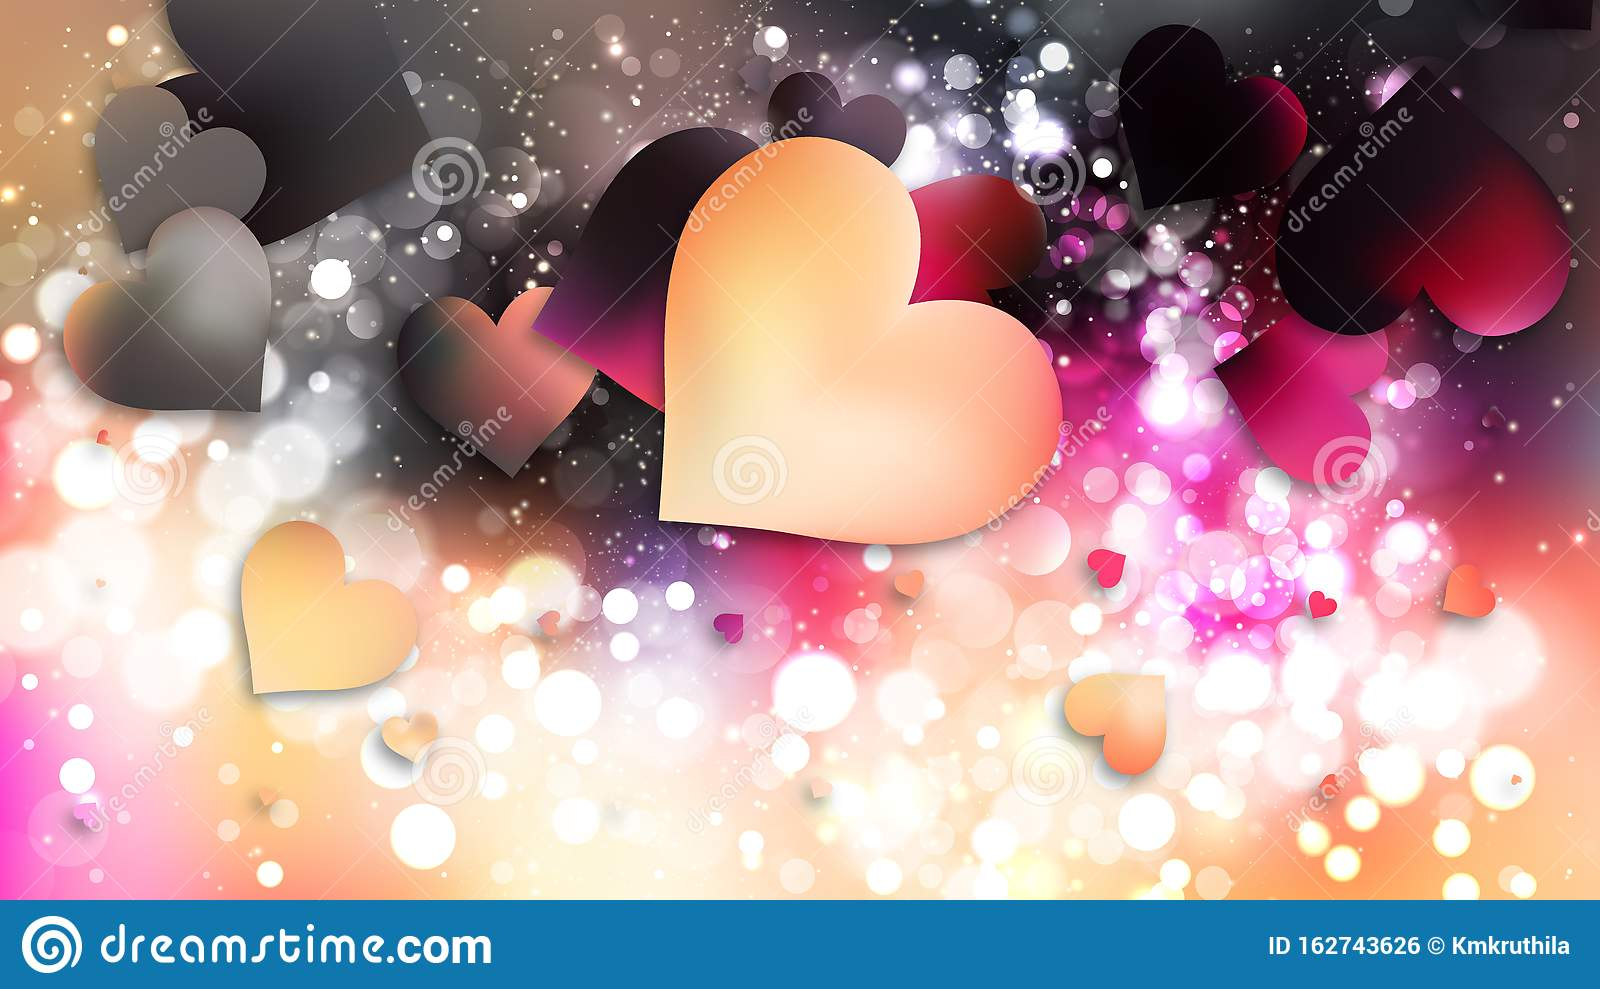 Pink And Black Heart Wallpaper Background Image Stock Vector Illustration Of Romance Happy 162743626